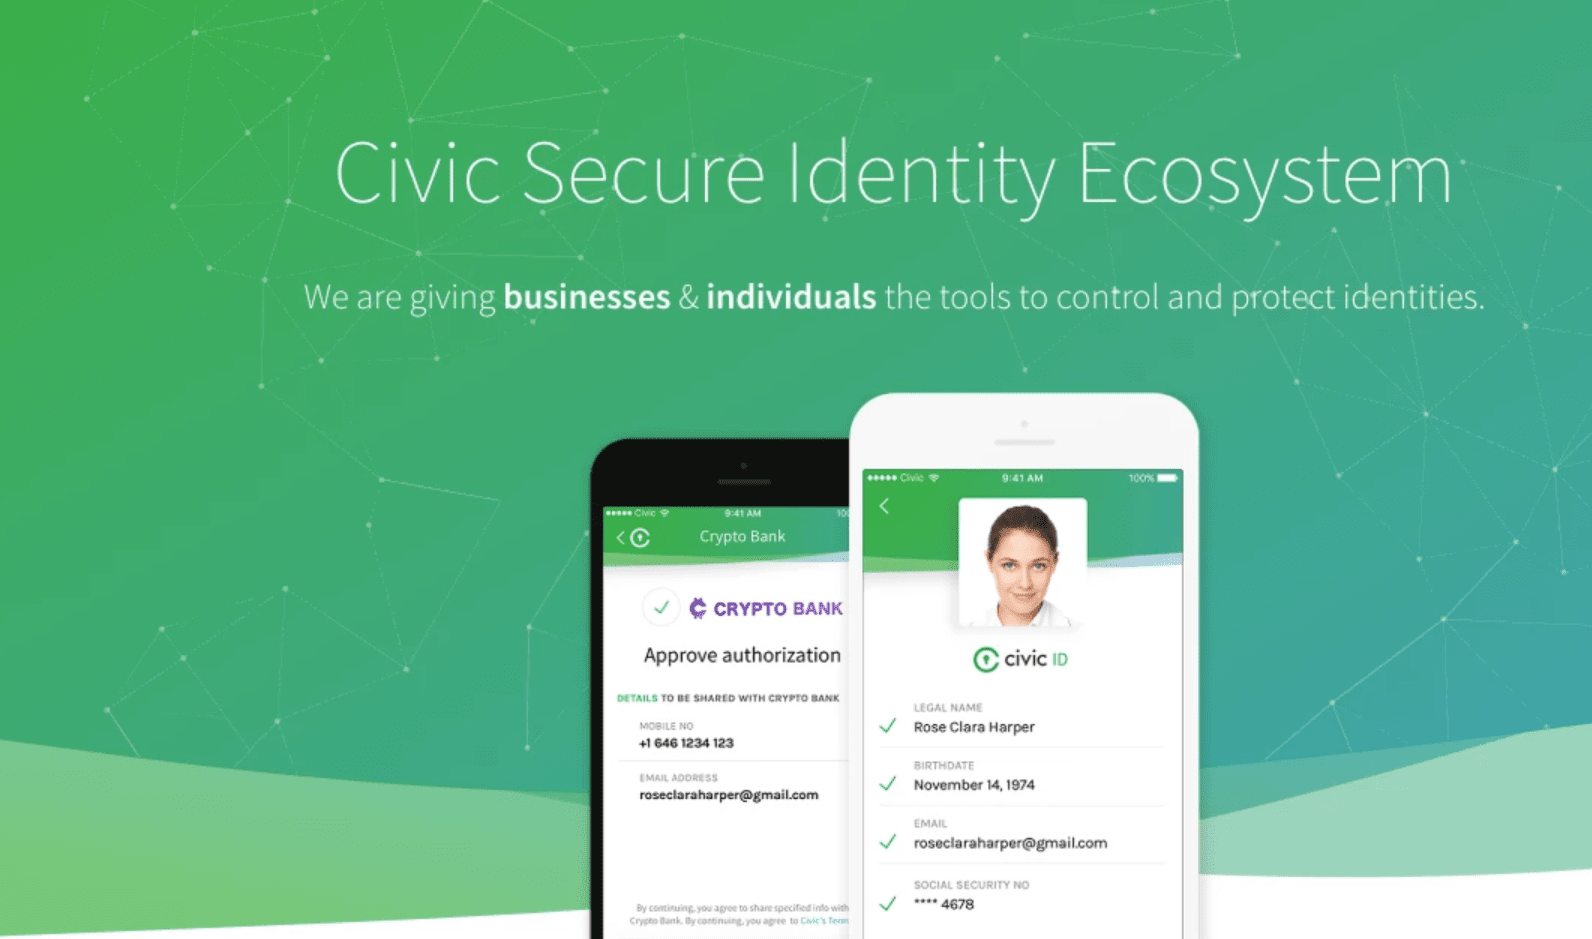 Complete KYC Verification Instantly with Civic App